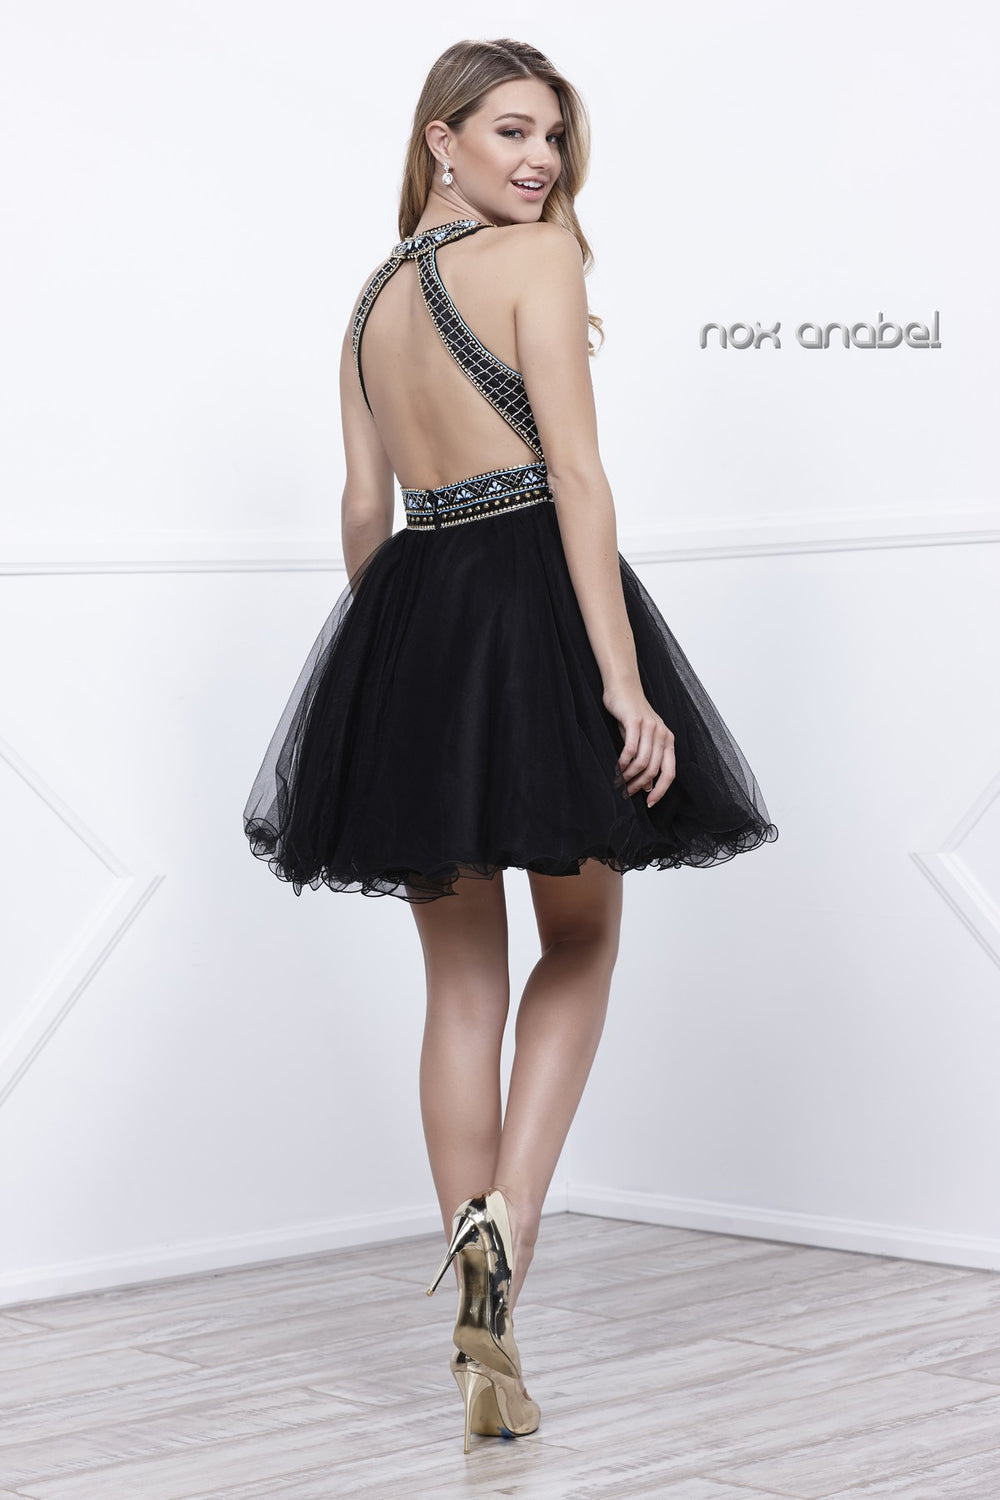 HALTER NECKLINE KEYHOLE JEWELED EMBELLISHED PROM DRESS 6260 BY NARIANNA